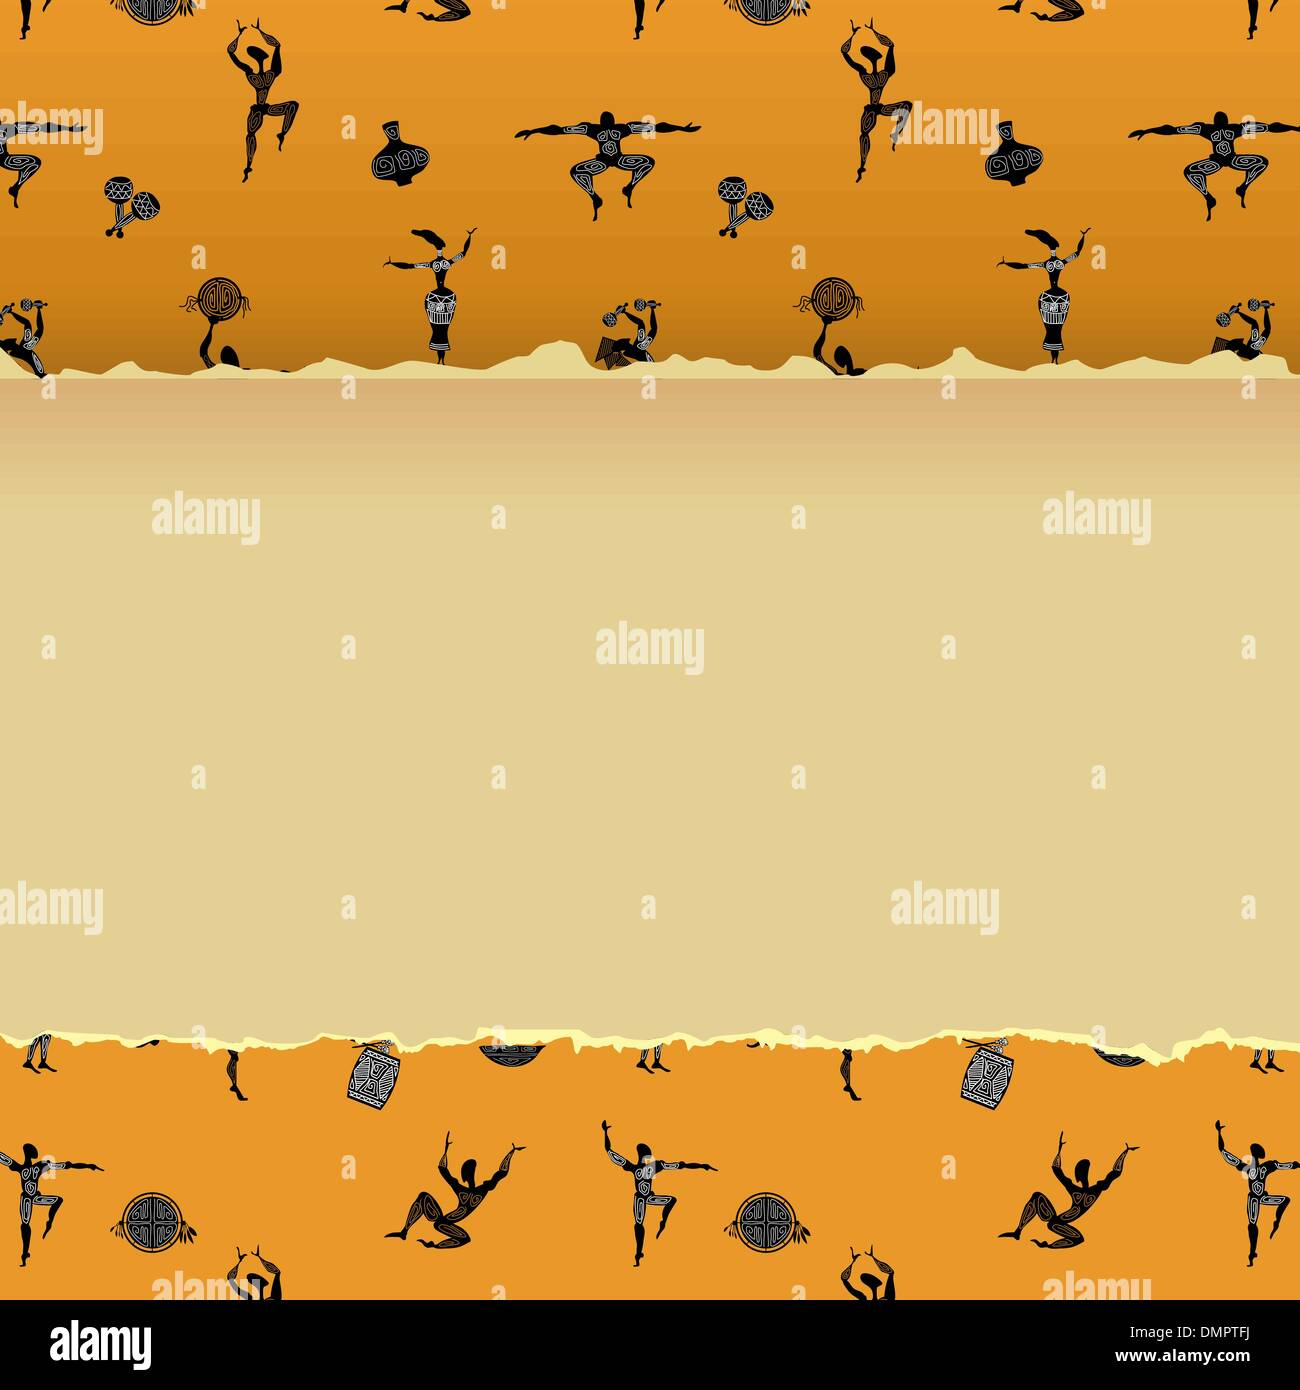 Abstract background with figures of primitive people - Stock Image